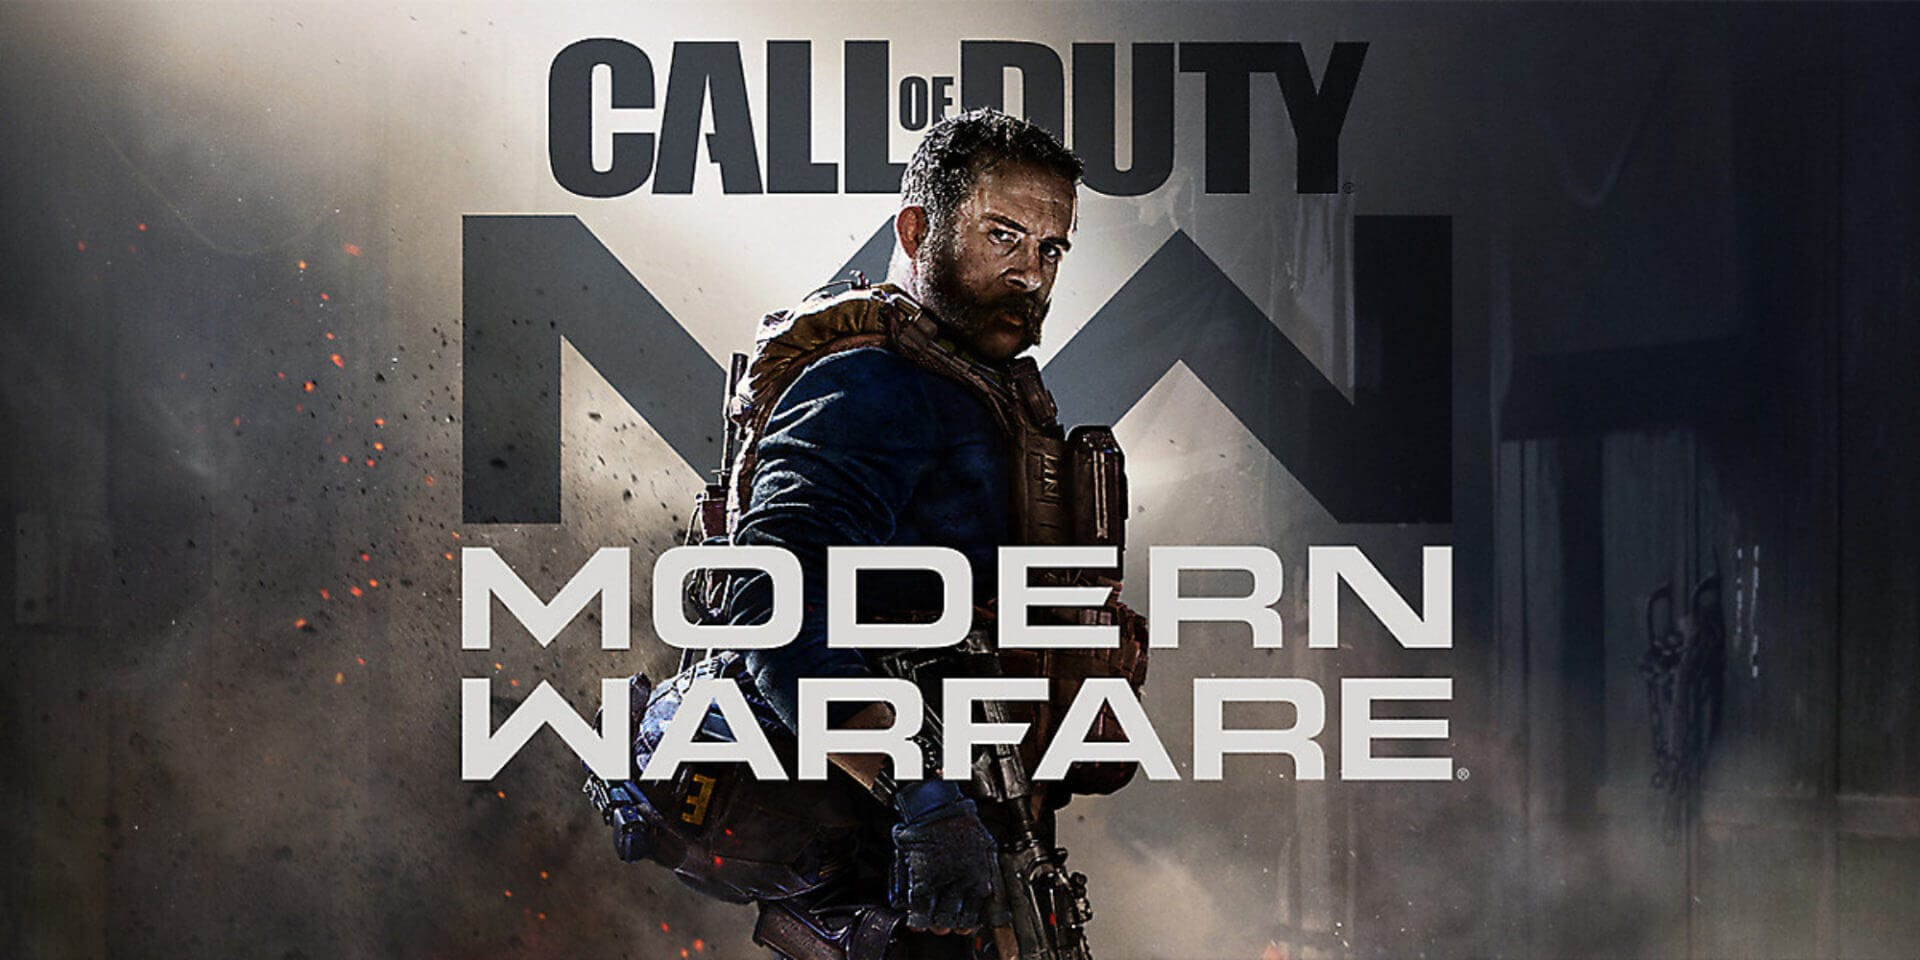 upcoming video games october 2019 call of duty modern warfare